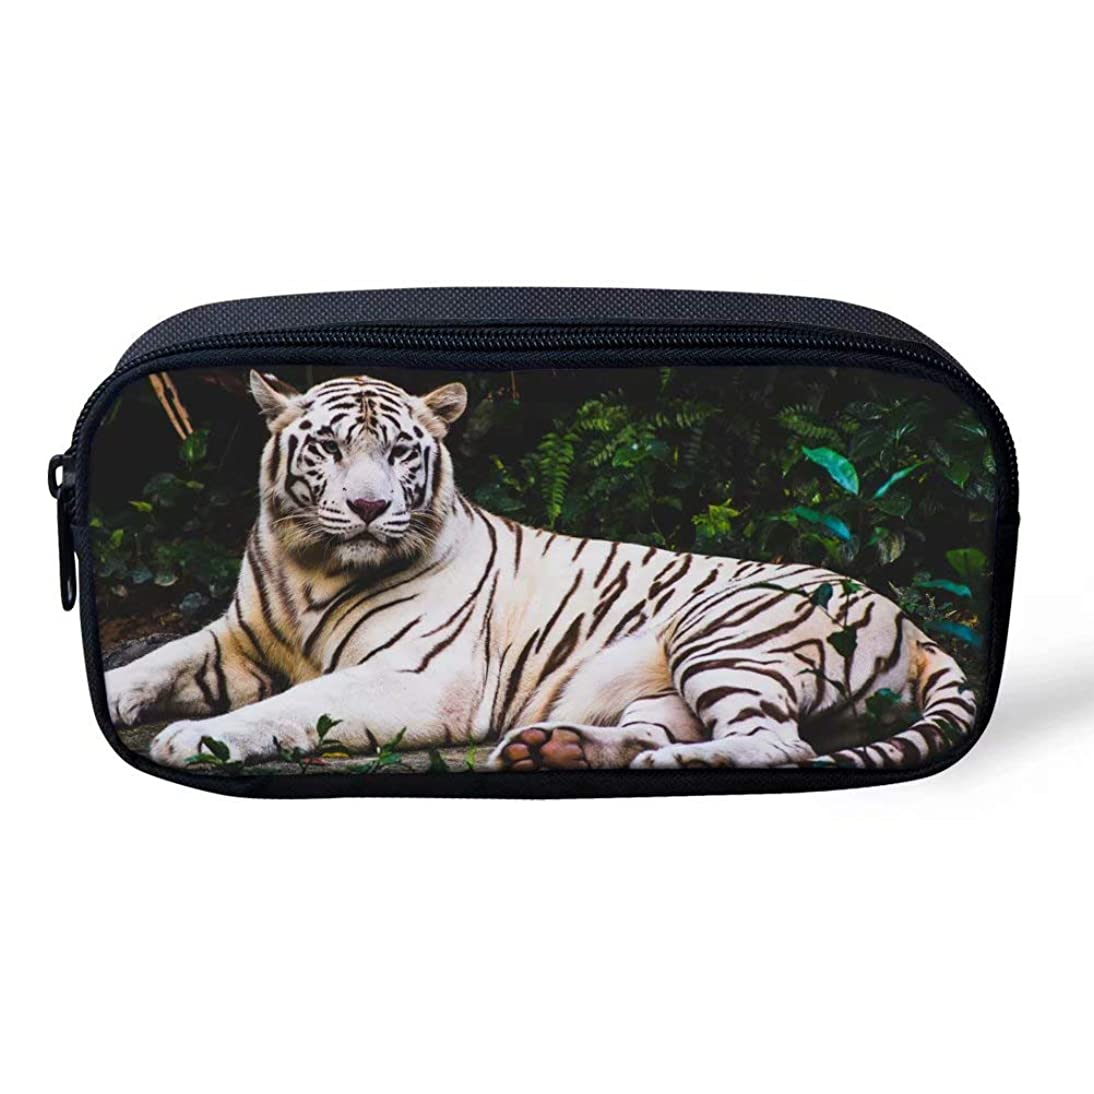 Pencil Cases Tiger for Boys School Pen Porch Painting Tool Bags aaks379370621219